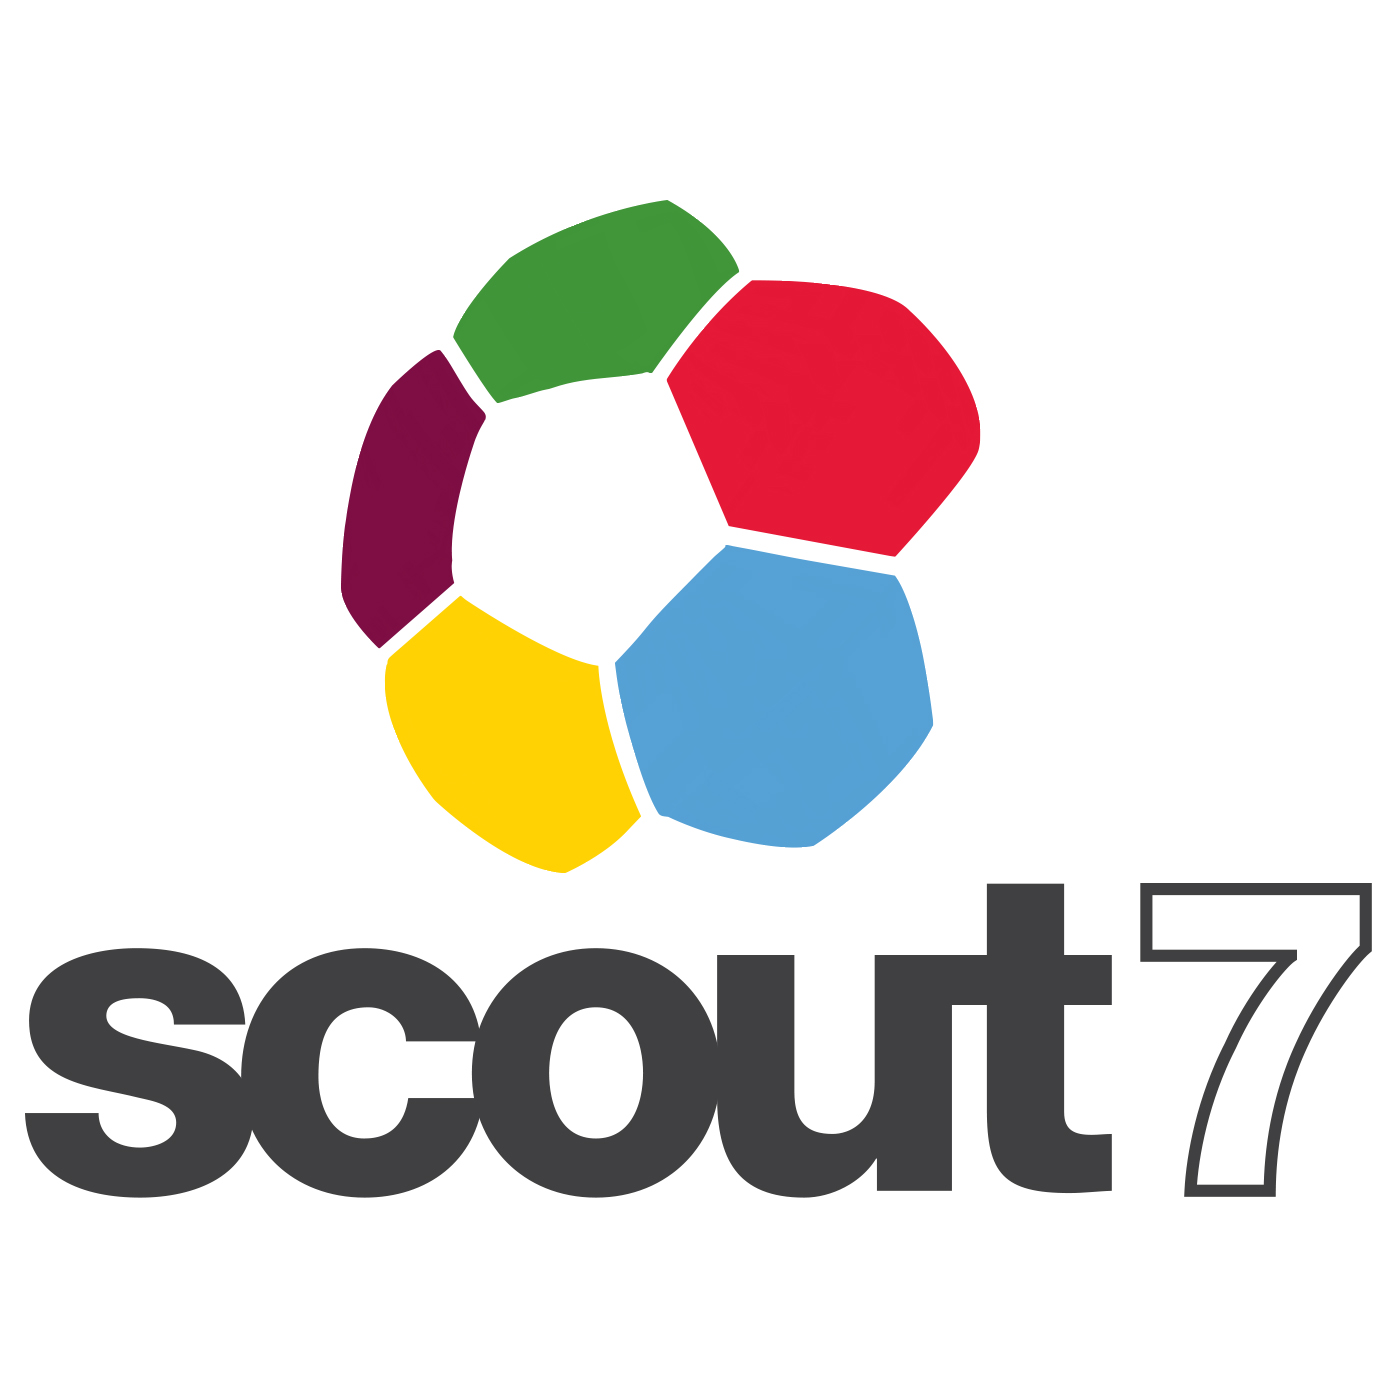 The Scout7 Podcast logo